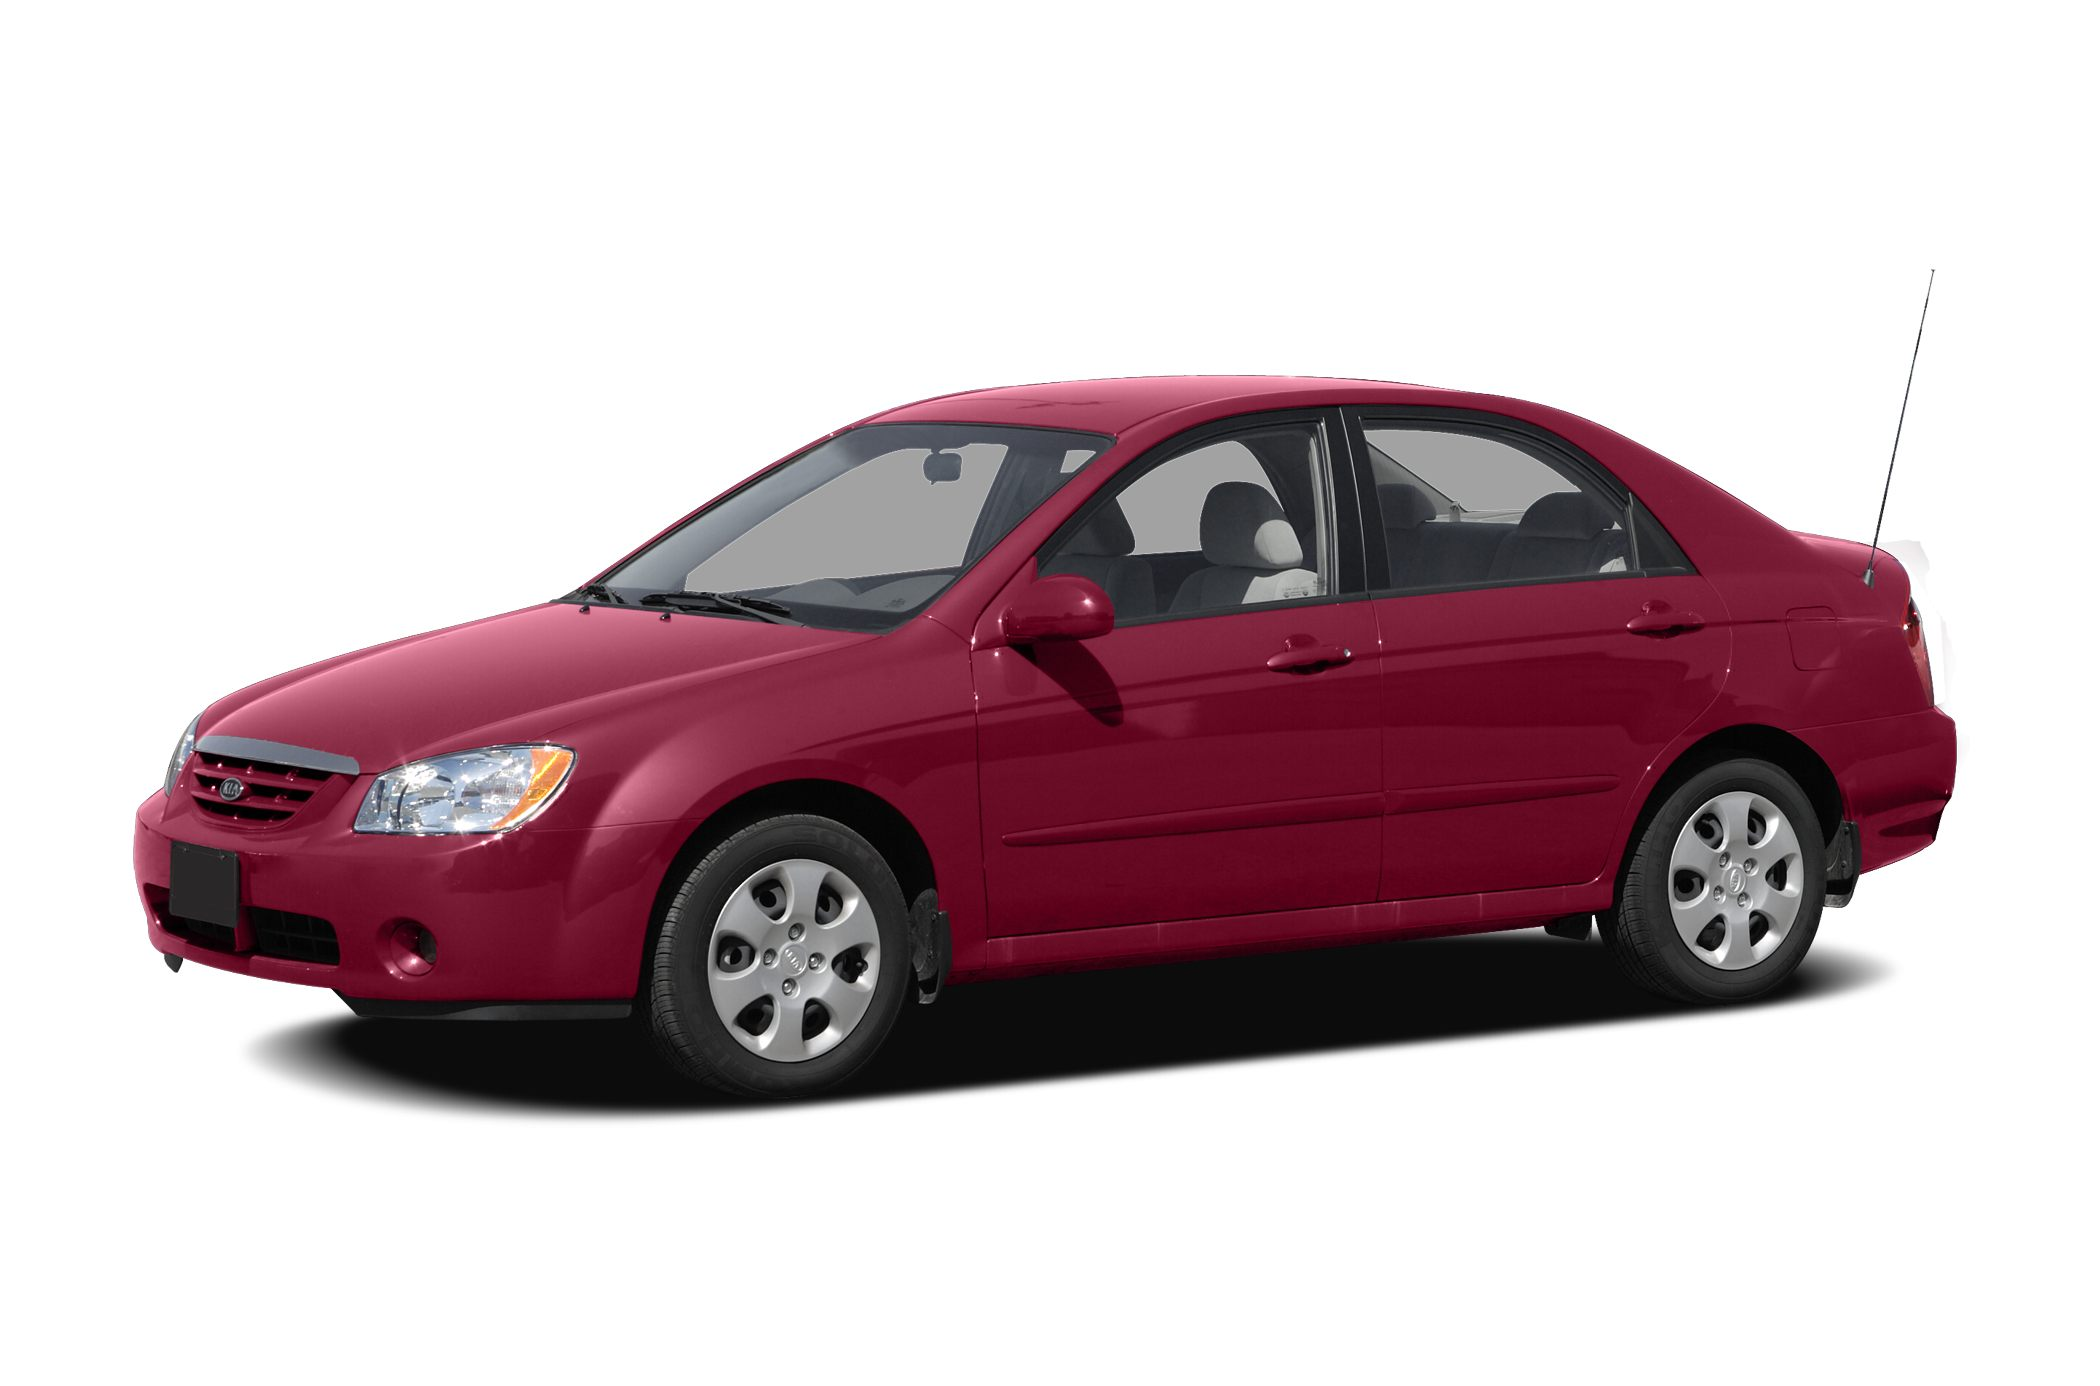 2006 Kia Spectra EX Sedan for sale in Anniston for $0 with 157,791 miles